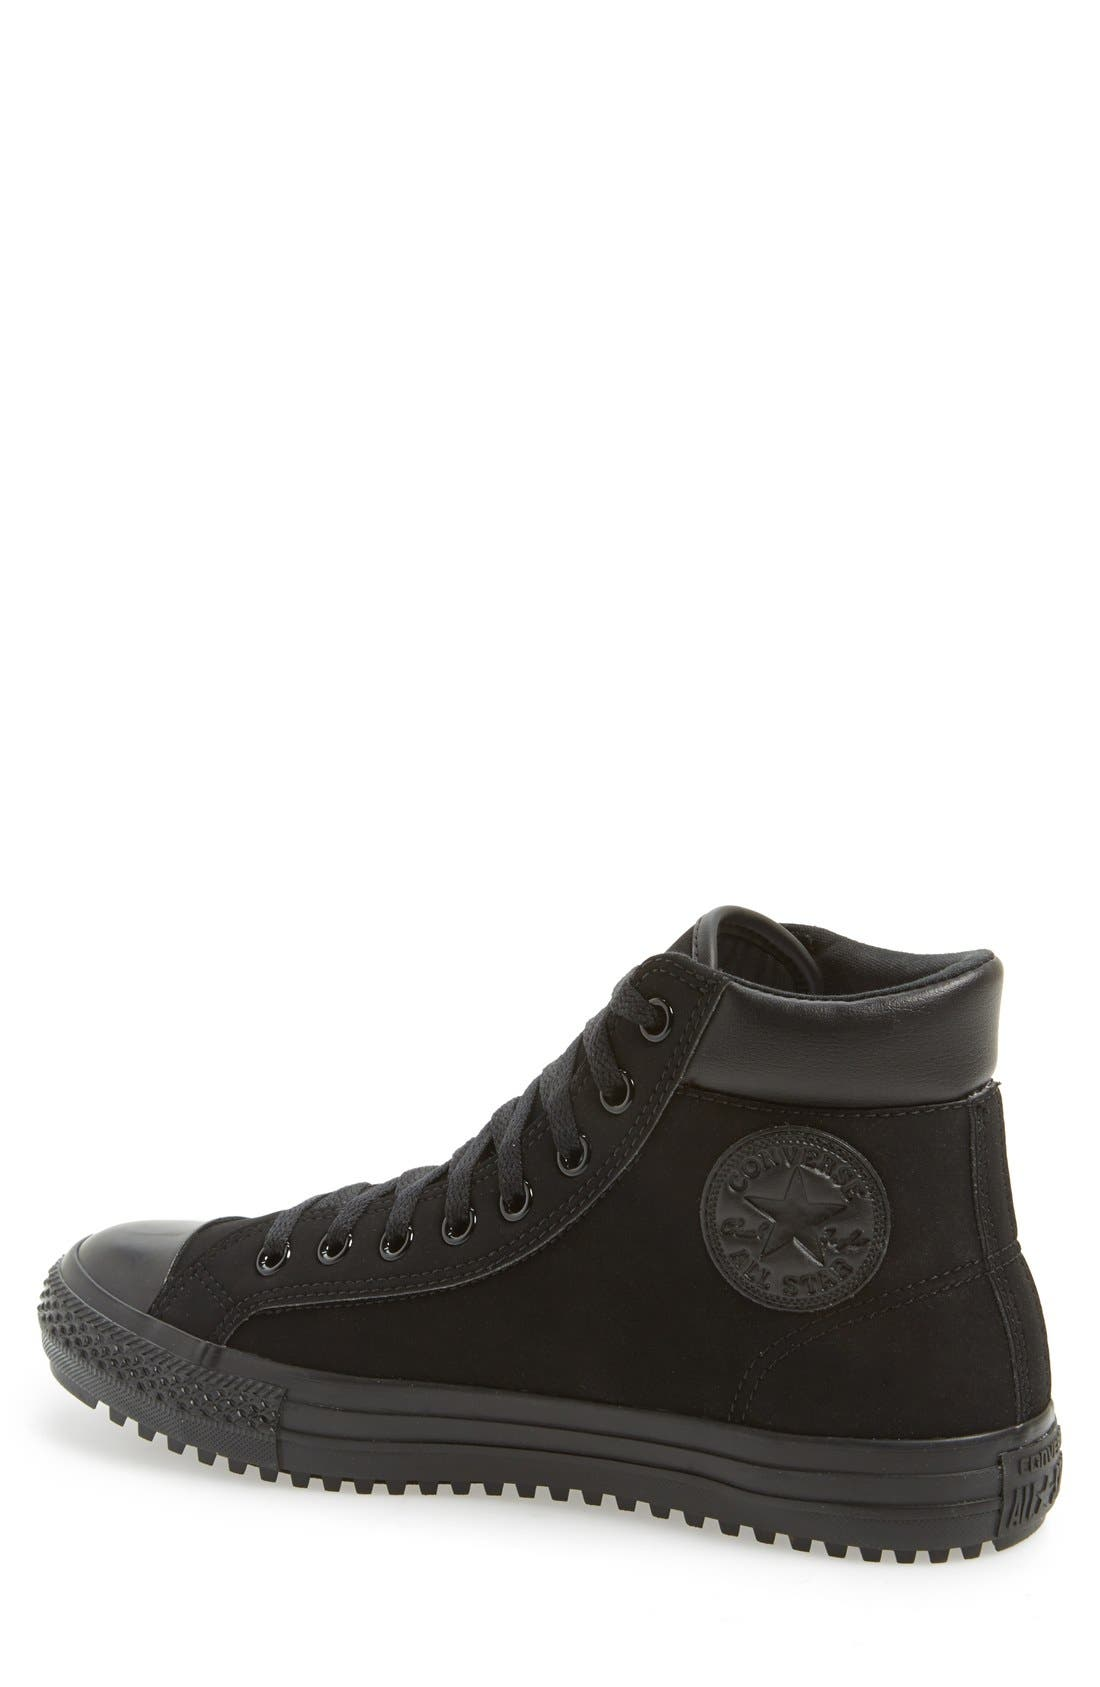 CONVERSE, Chuck Taylor<sup>®</sup> All Star<sup>®</sup> Sneaker, Alternate thumbnail 6, color, 001